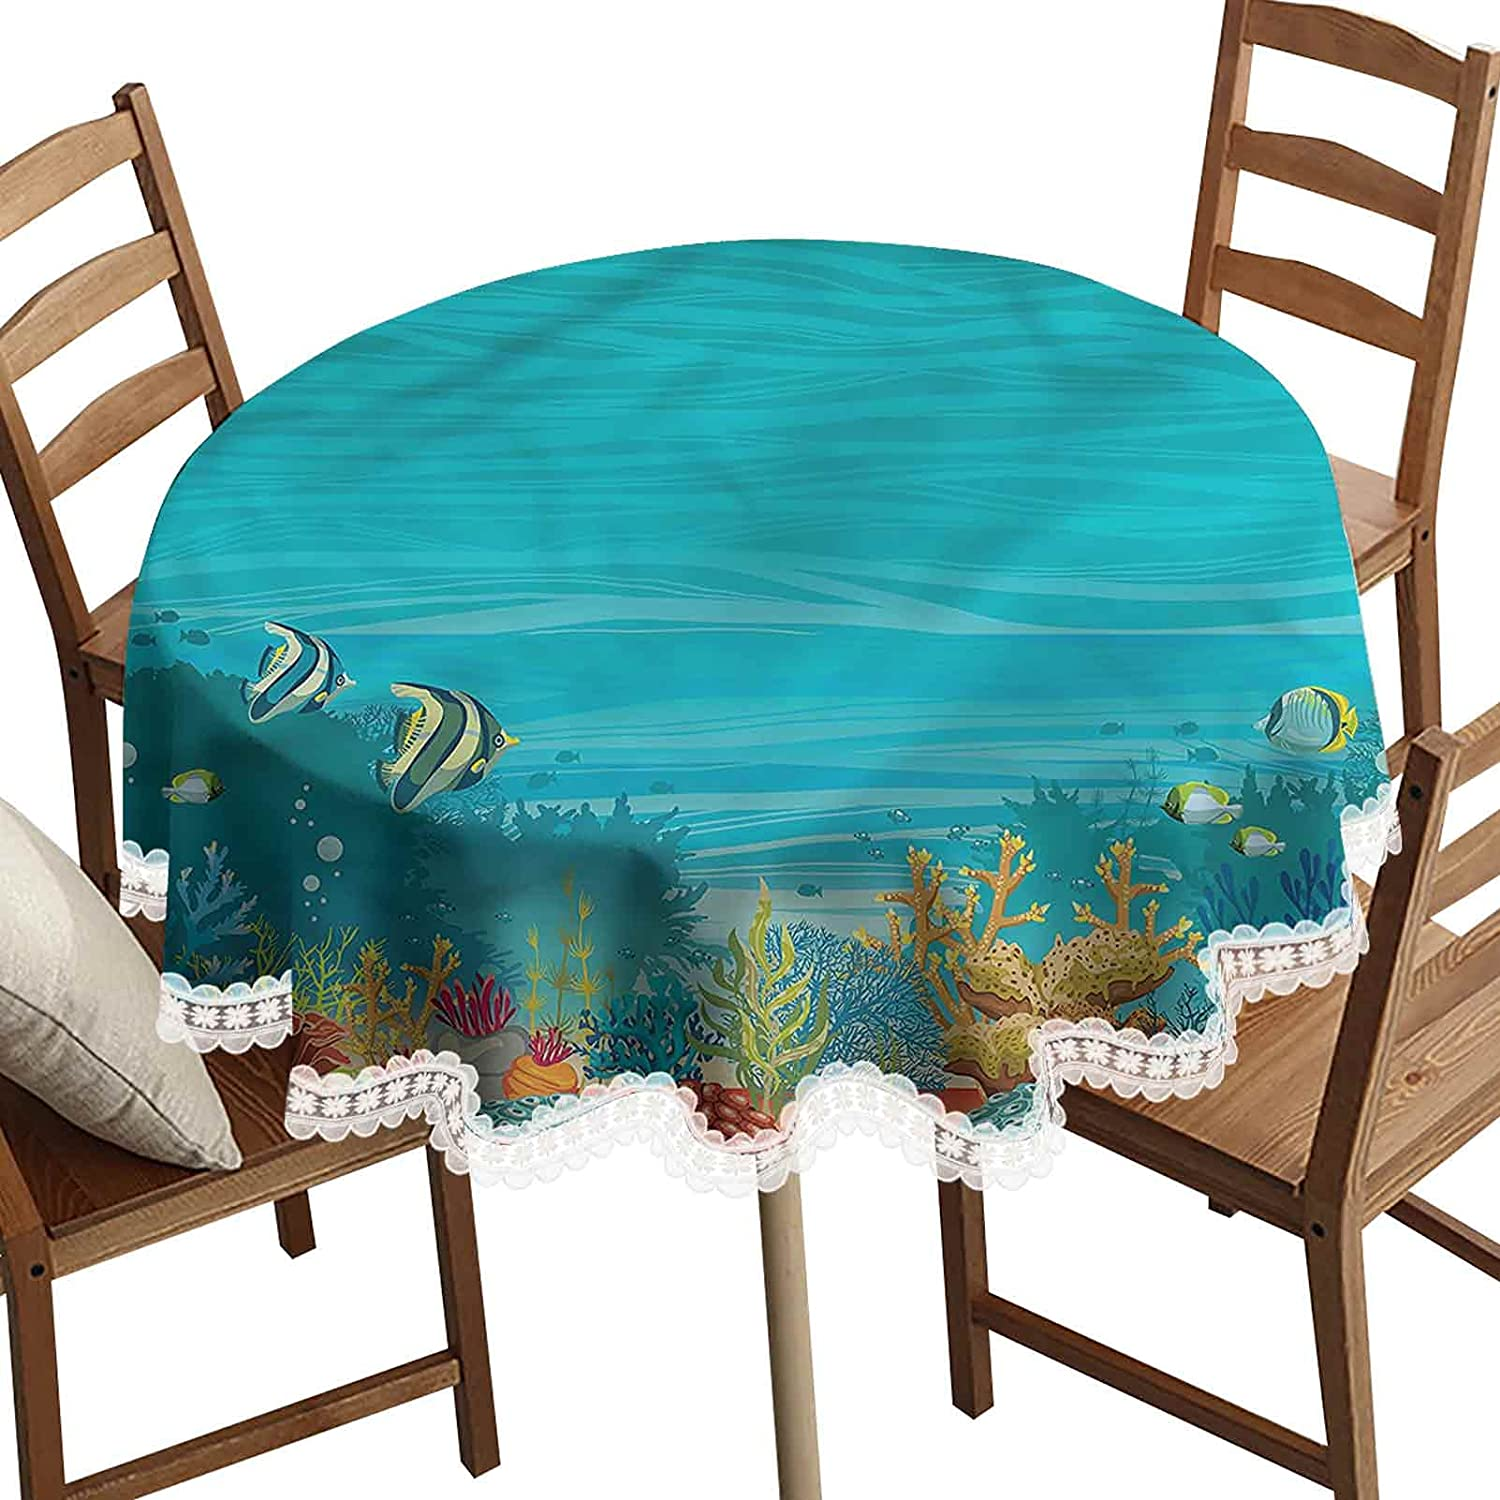 Underwater Decorative 2021 spring and summer new Round Table Cloth Plants Starfish W Time sale Sponge